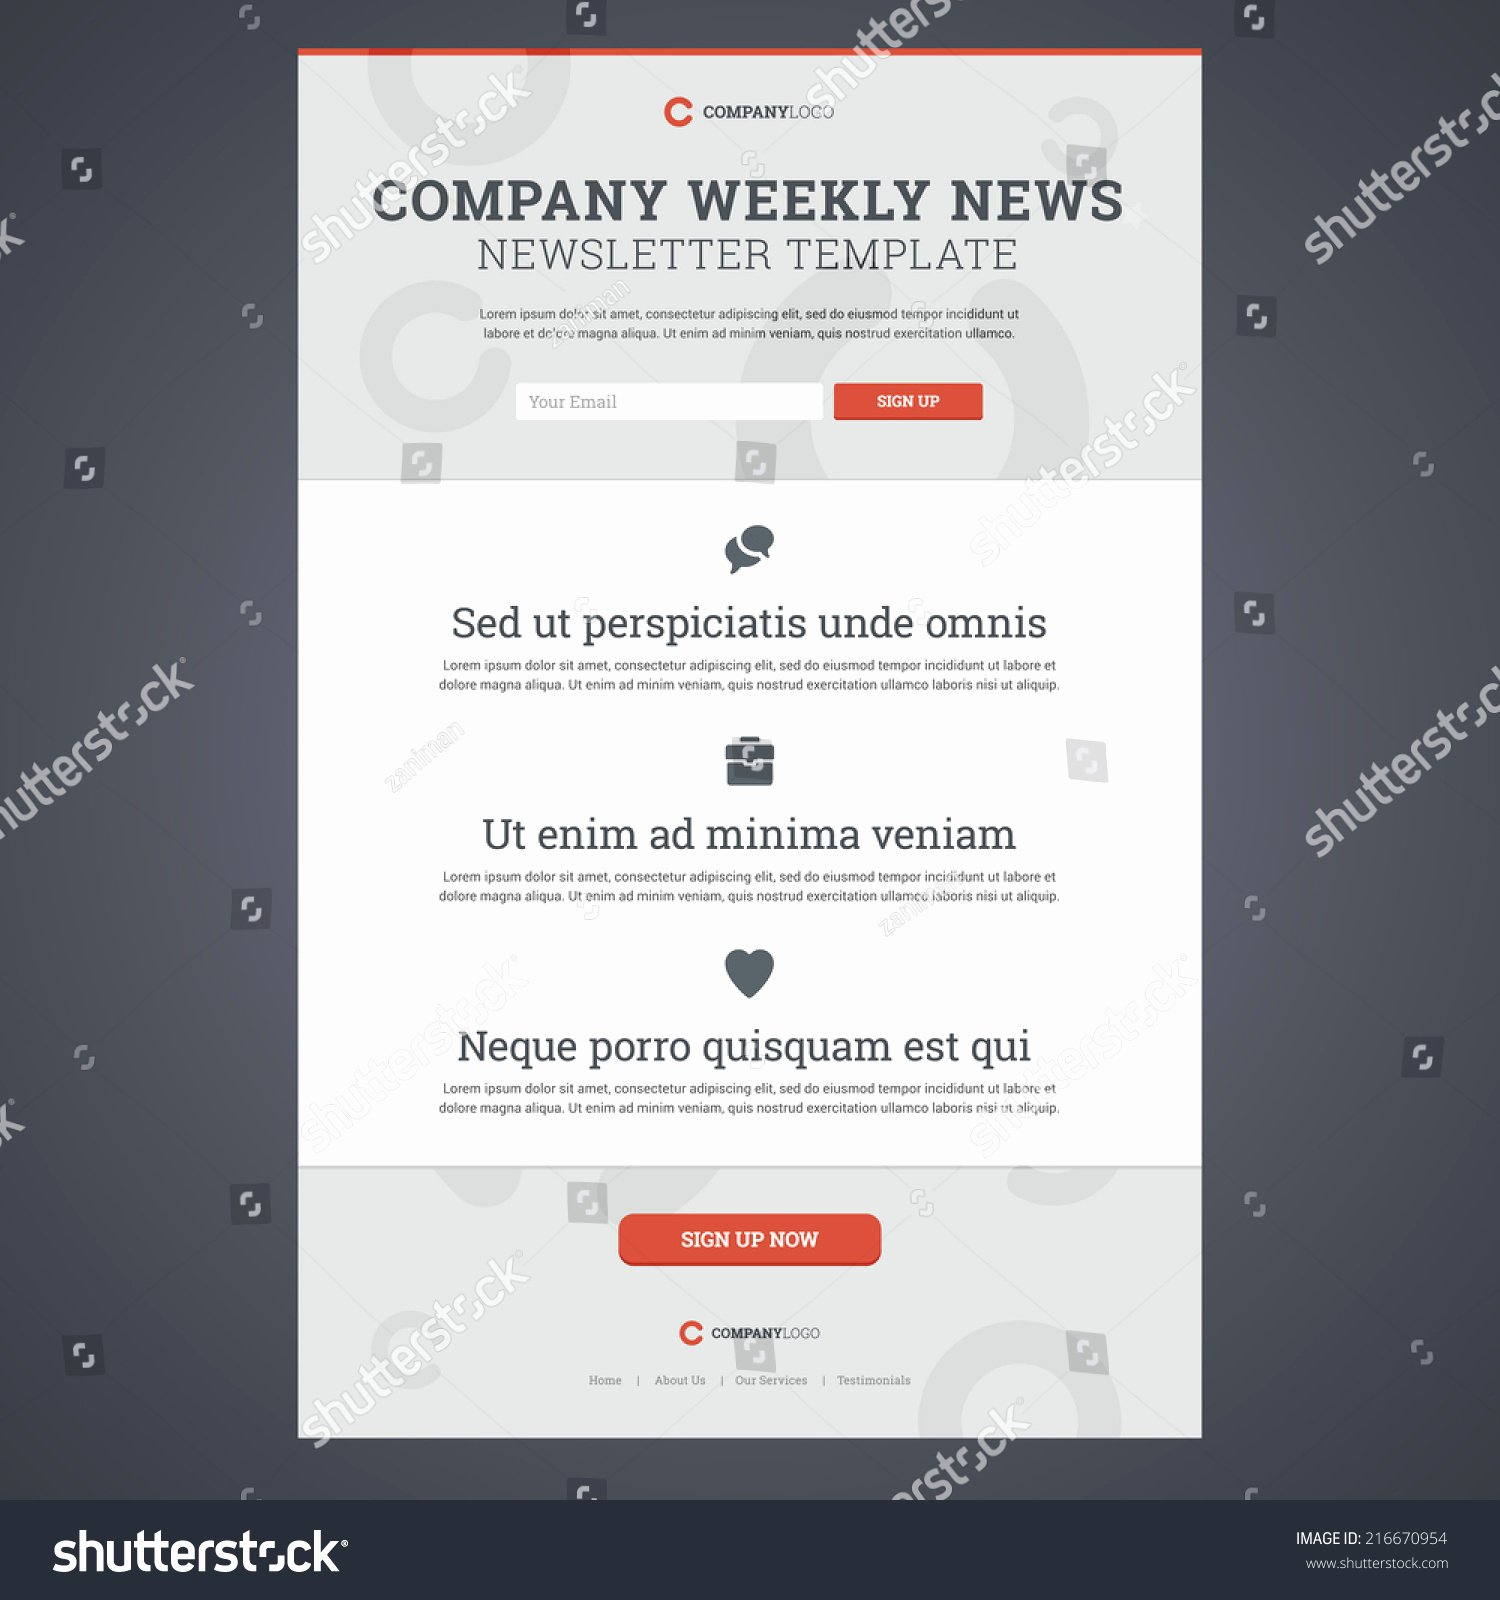 Newsletter Sign Up Template Elegant Pany News Newsletter Template Sign form Stock Vector